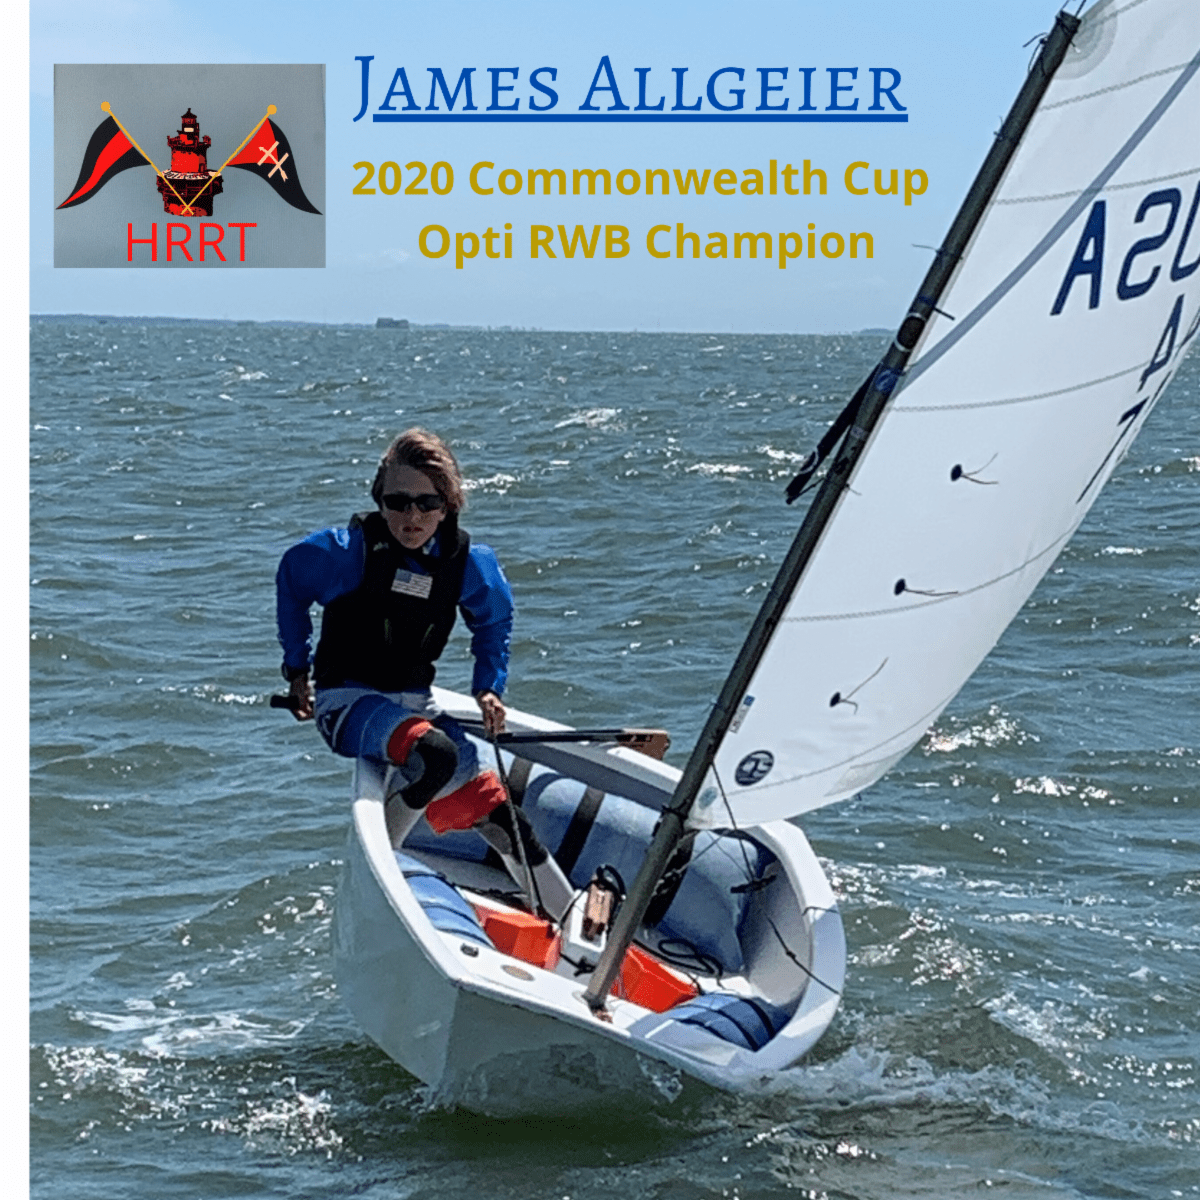 James Allgeier 2020 Commonwealth Cup